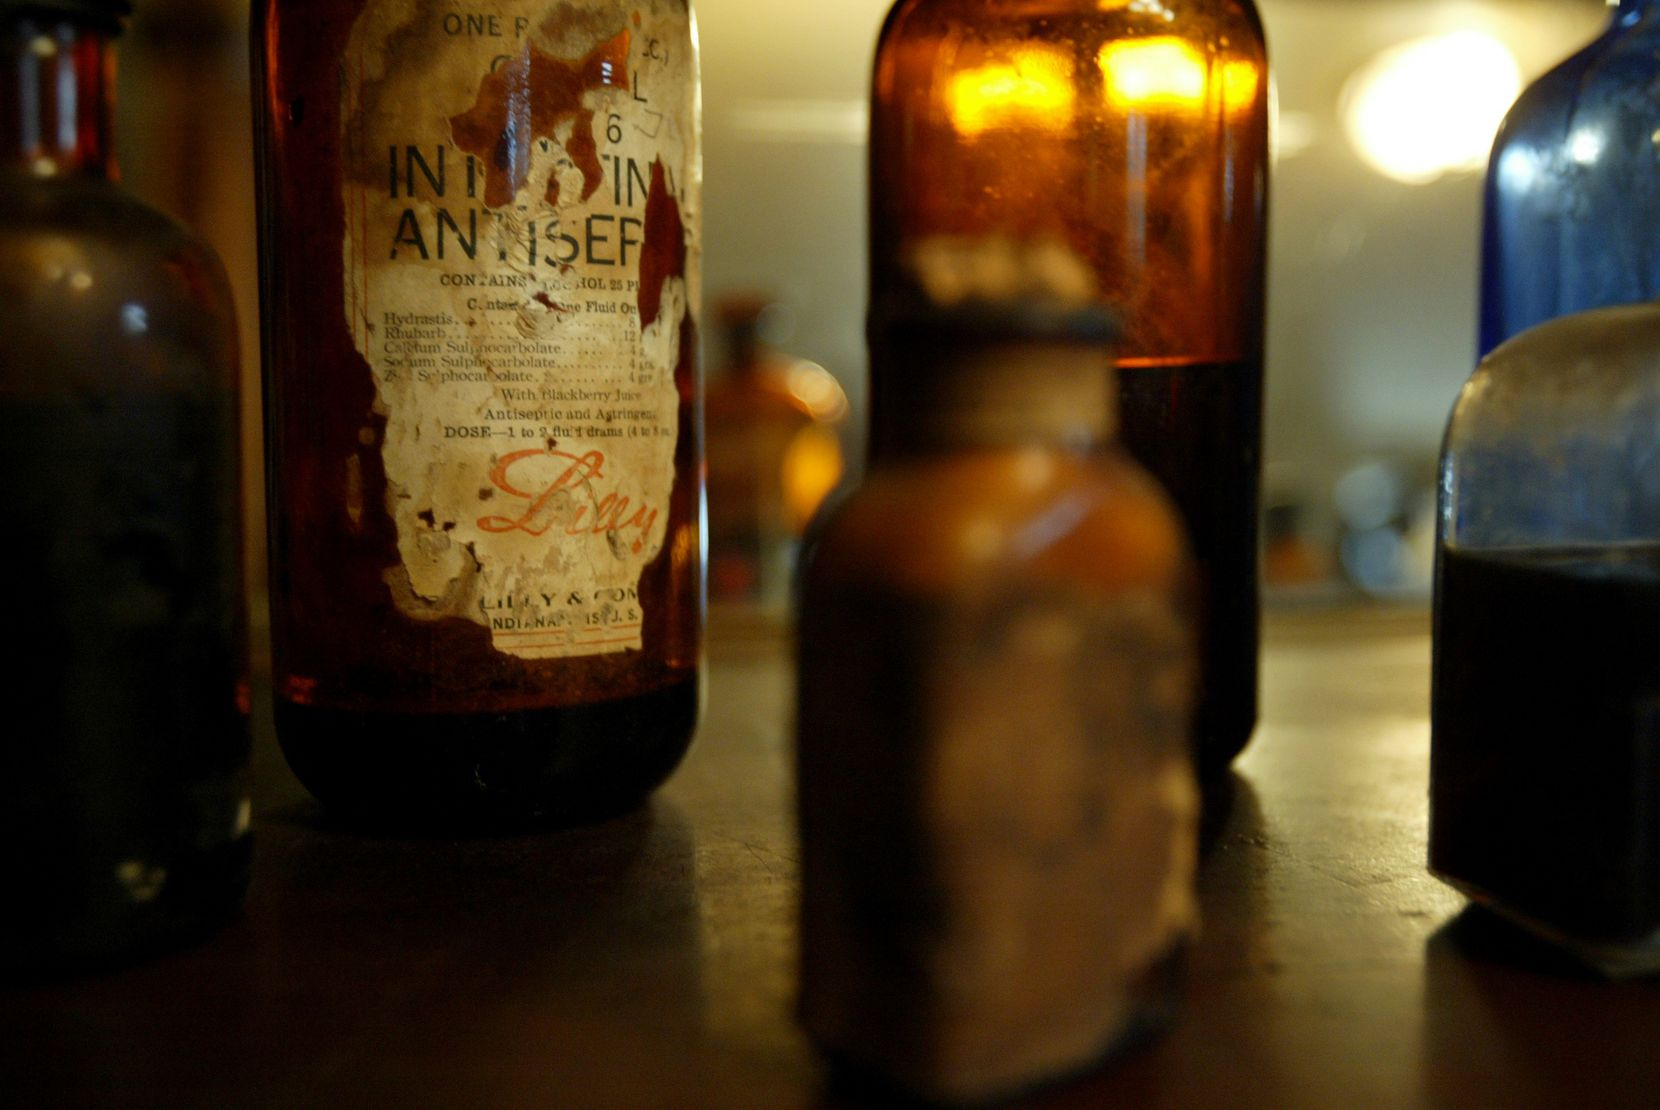 In the Apothecary store at Storybook Ranch, an authentic Western town assembled in McKinney in 1981, there are original pharmaceutical jars from Eli Lilly, some still containing drugs that are over 100 years old.